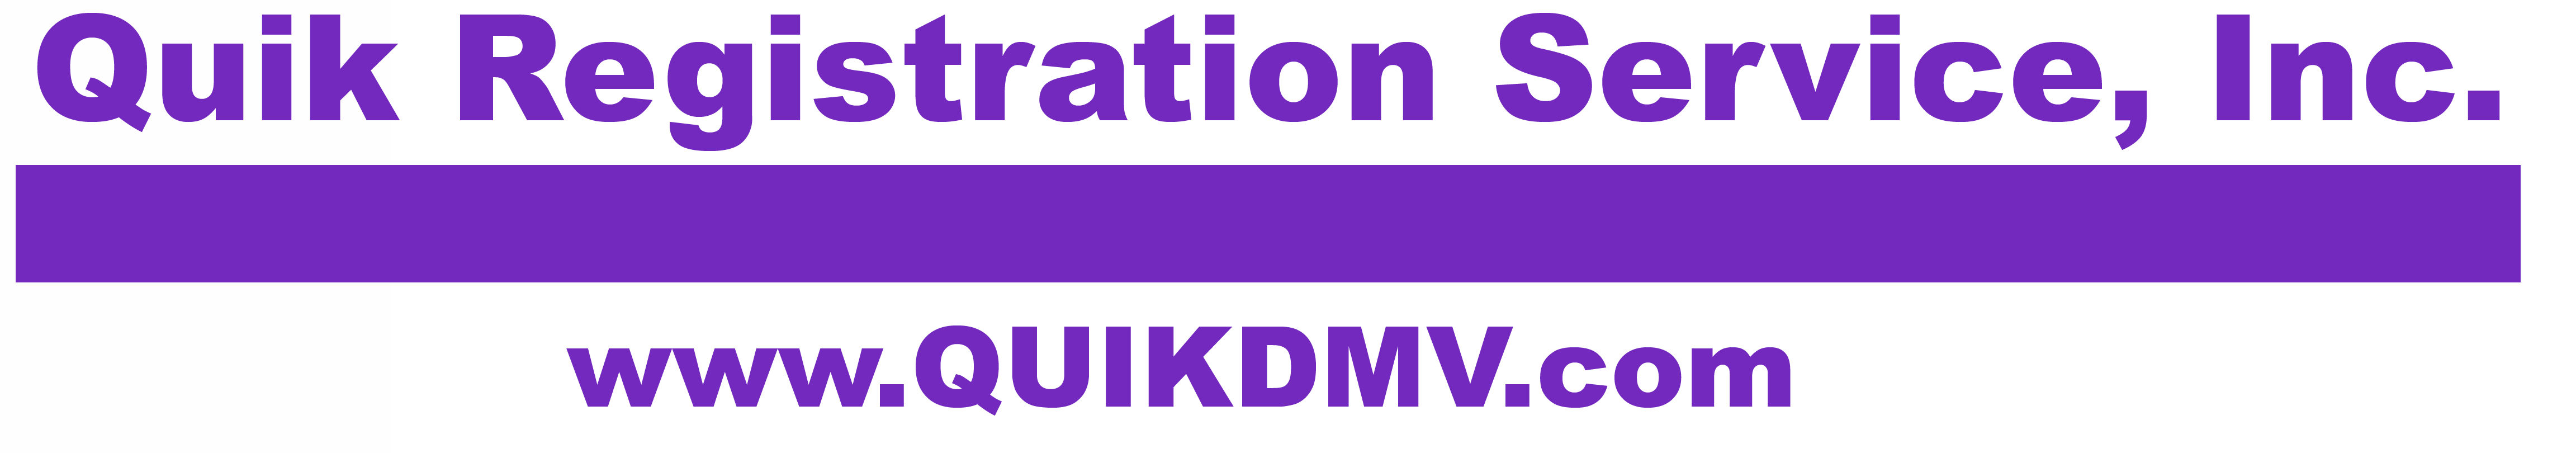 QuikDMV Registration Services